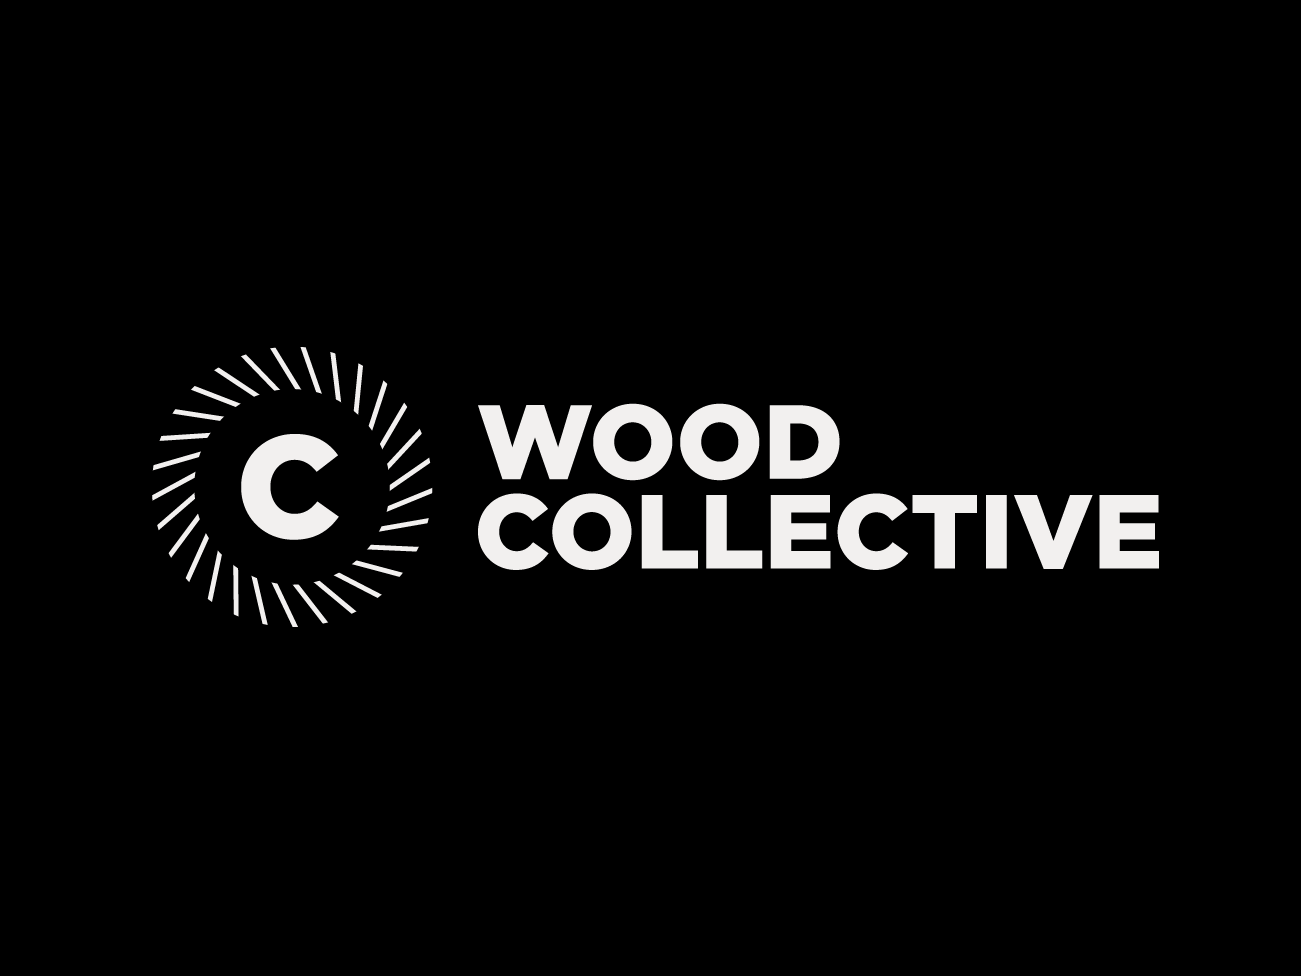 daniel-moisan-wood-collective-logo.png